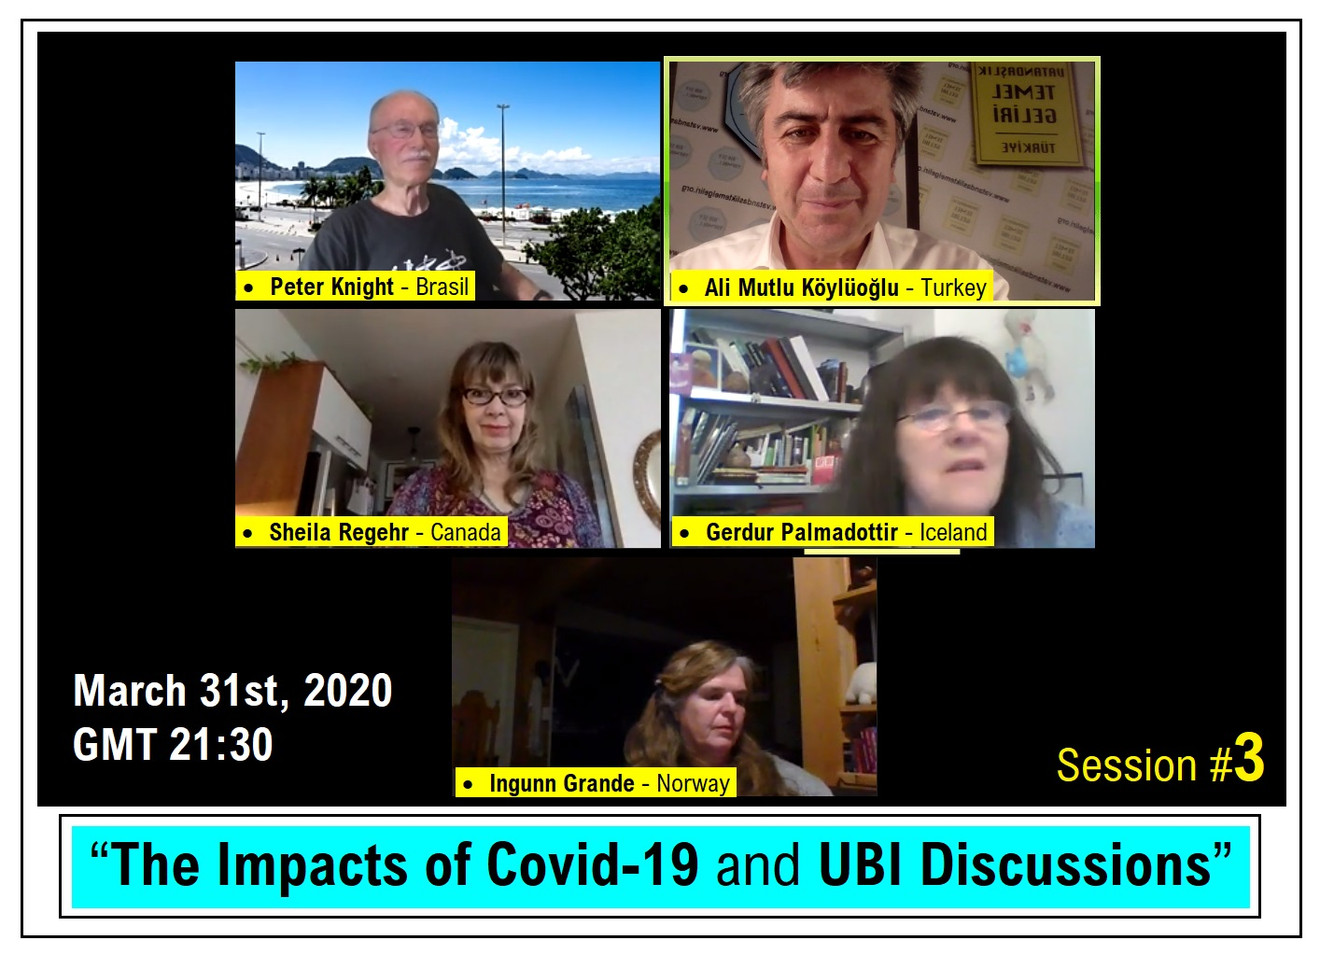 Impacts of Covid 19 and UBI Discussions - Session #3 - March 31st, 2020